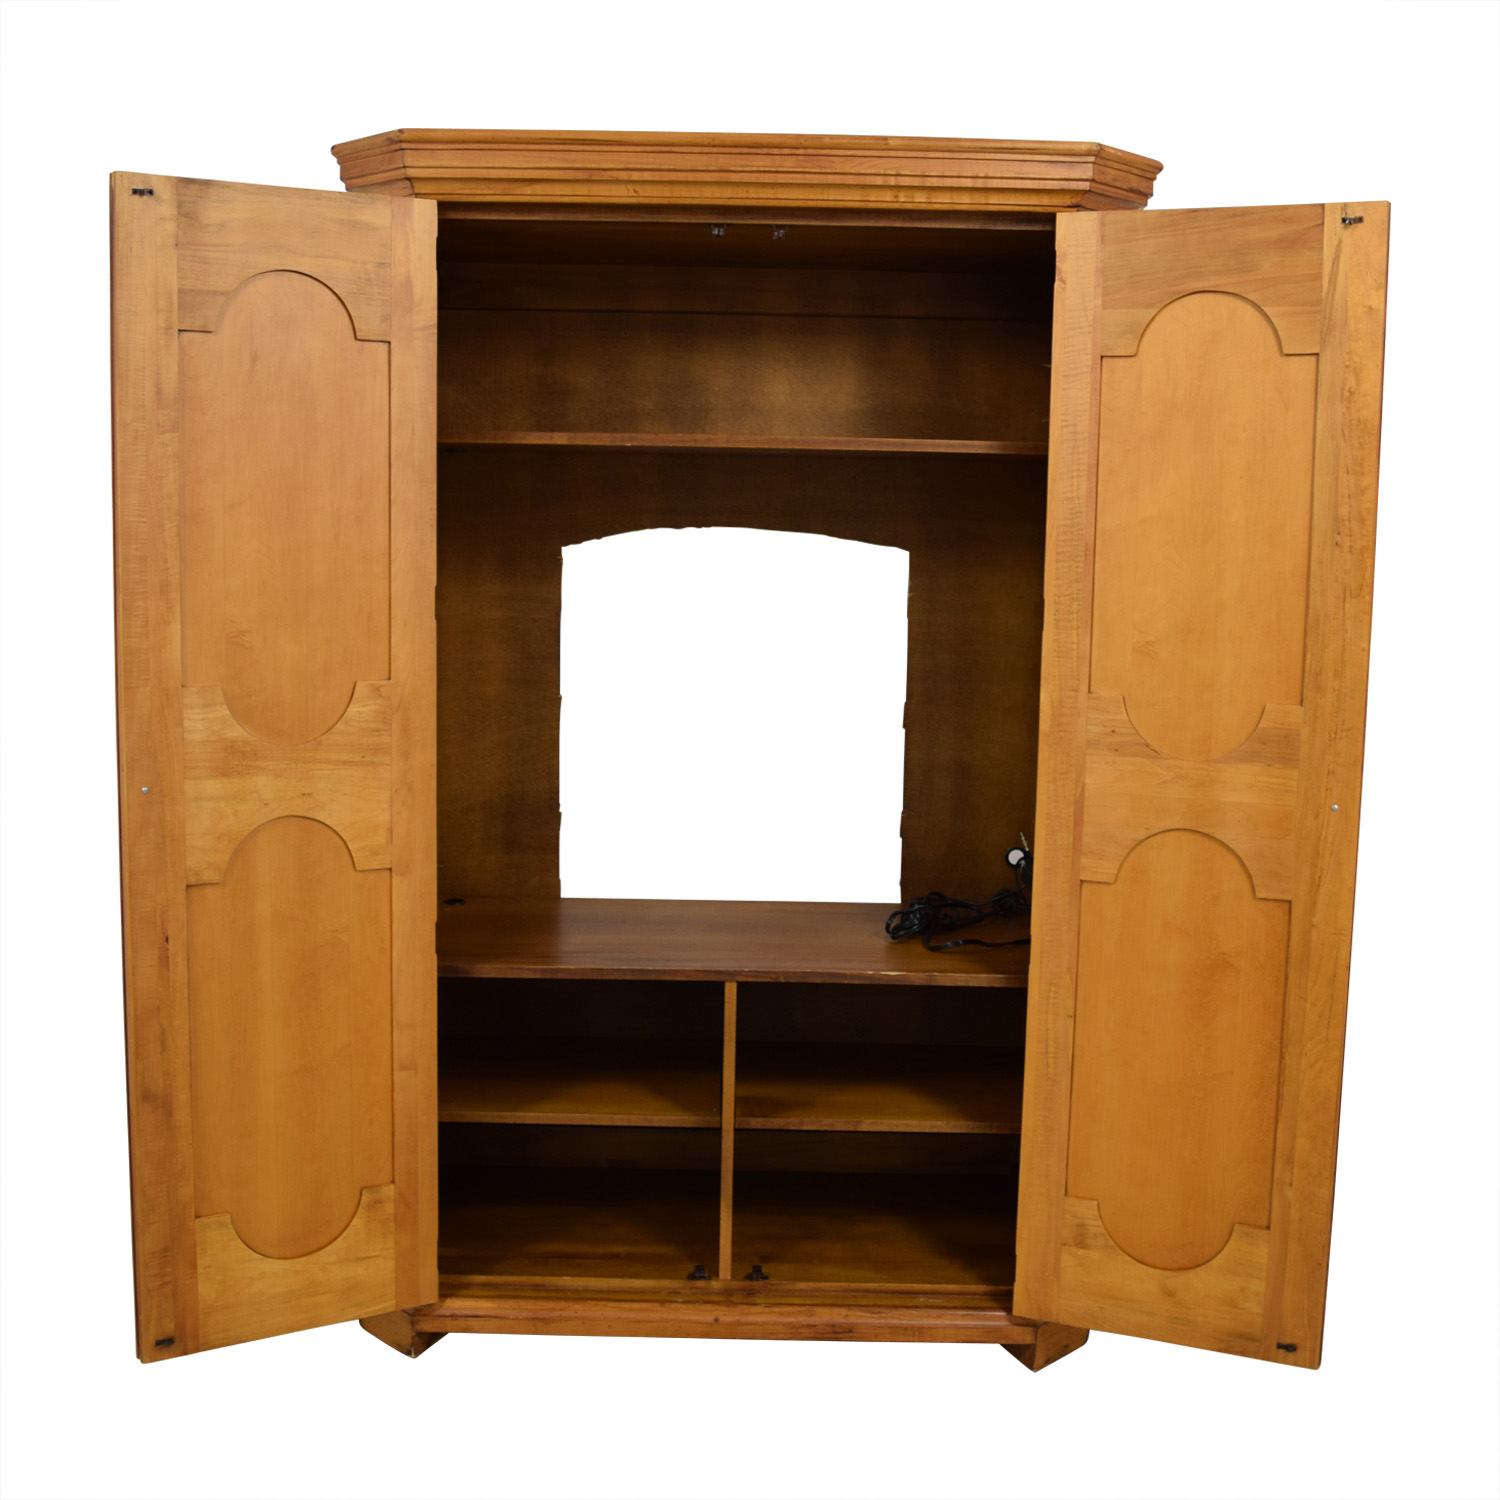 Platypus Two-Toned Armoire Platypus